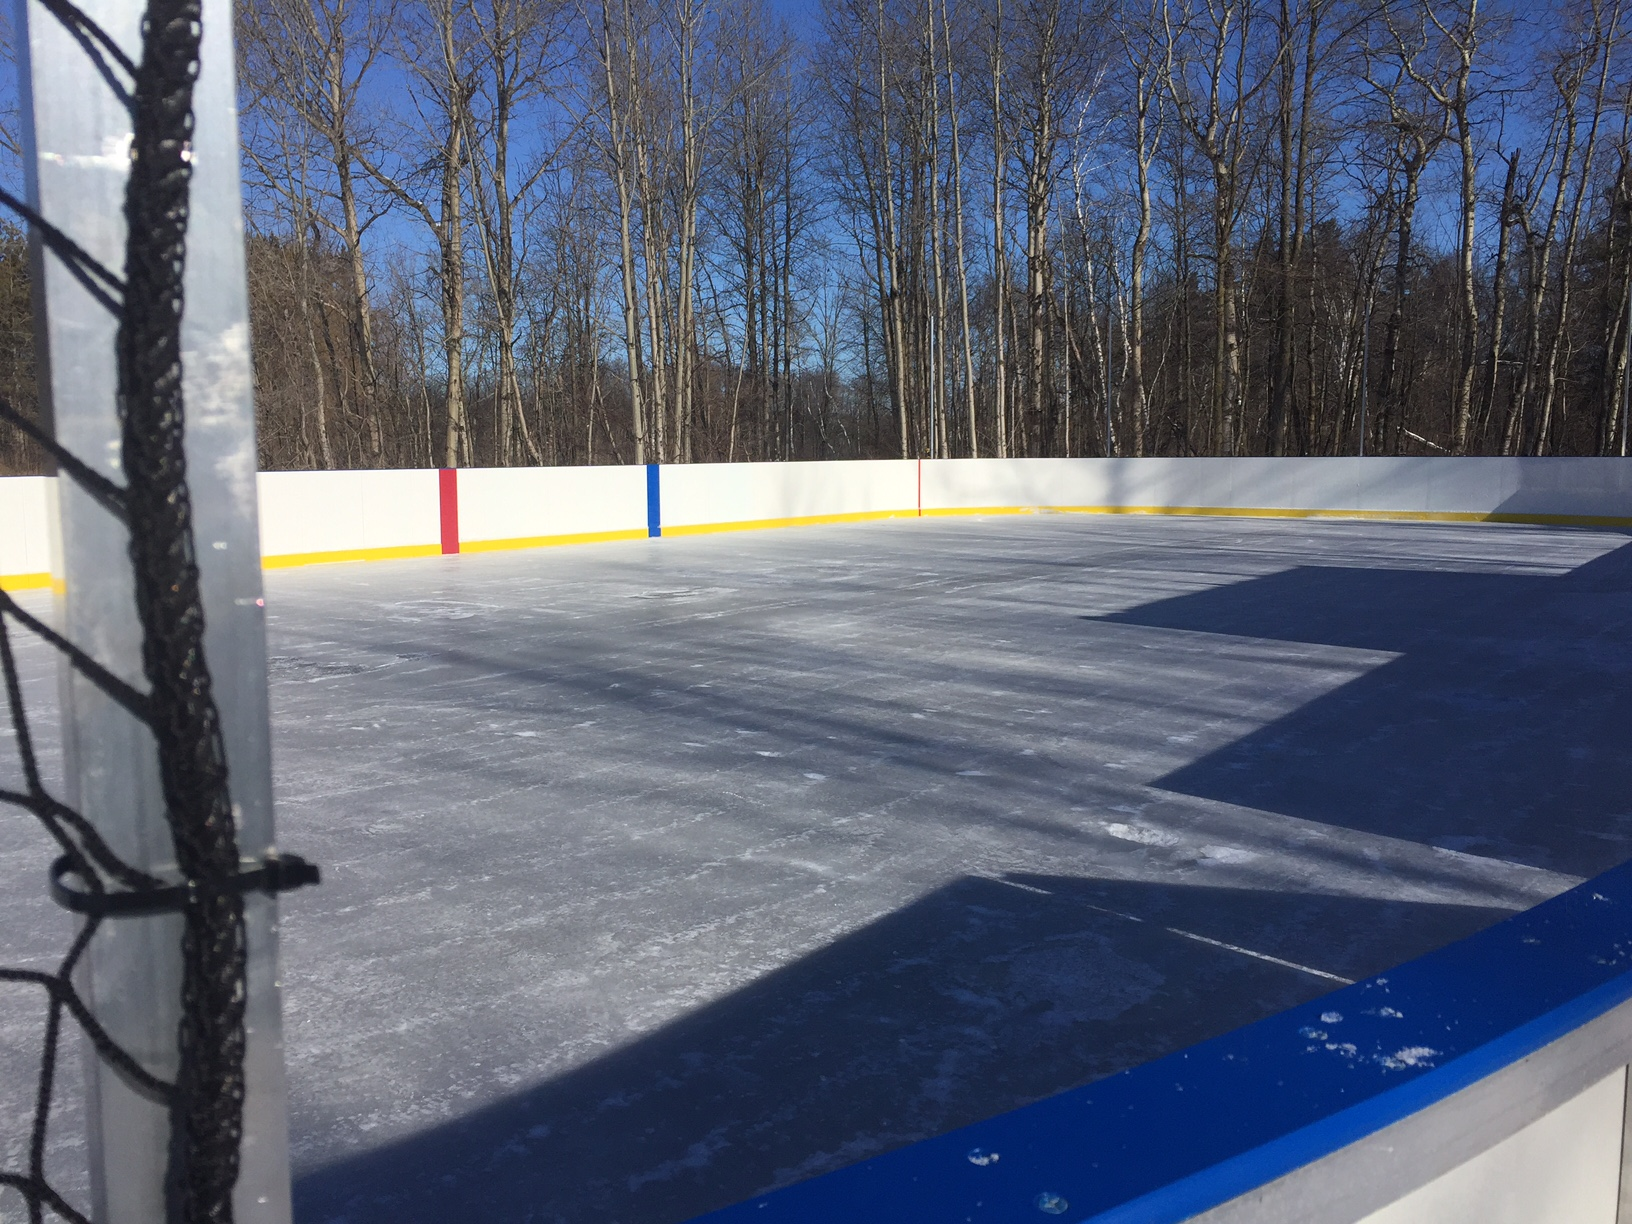 Refrigerated rink with aluminum framed boards